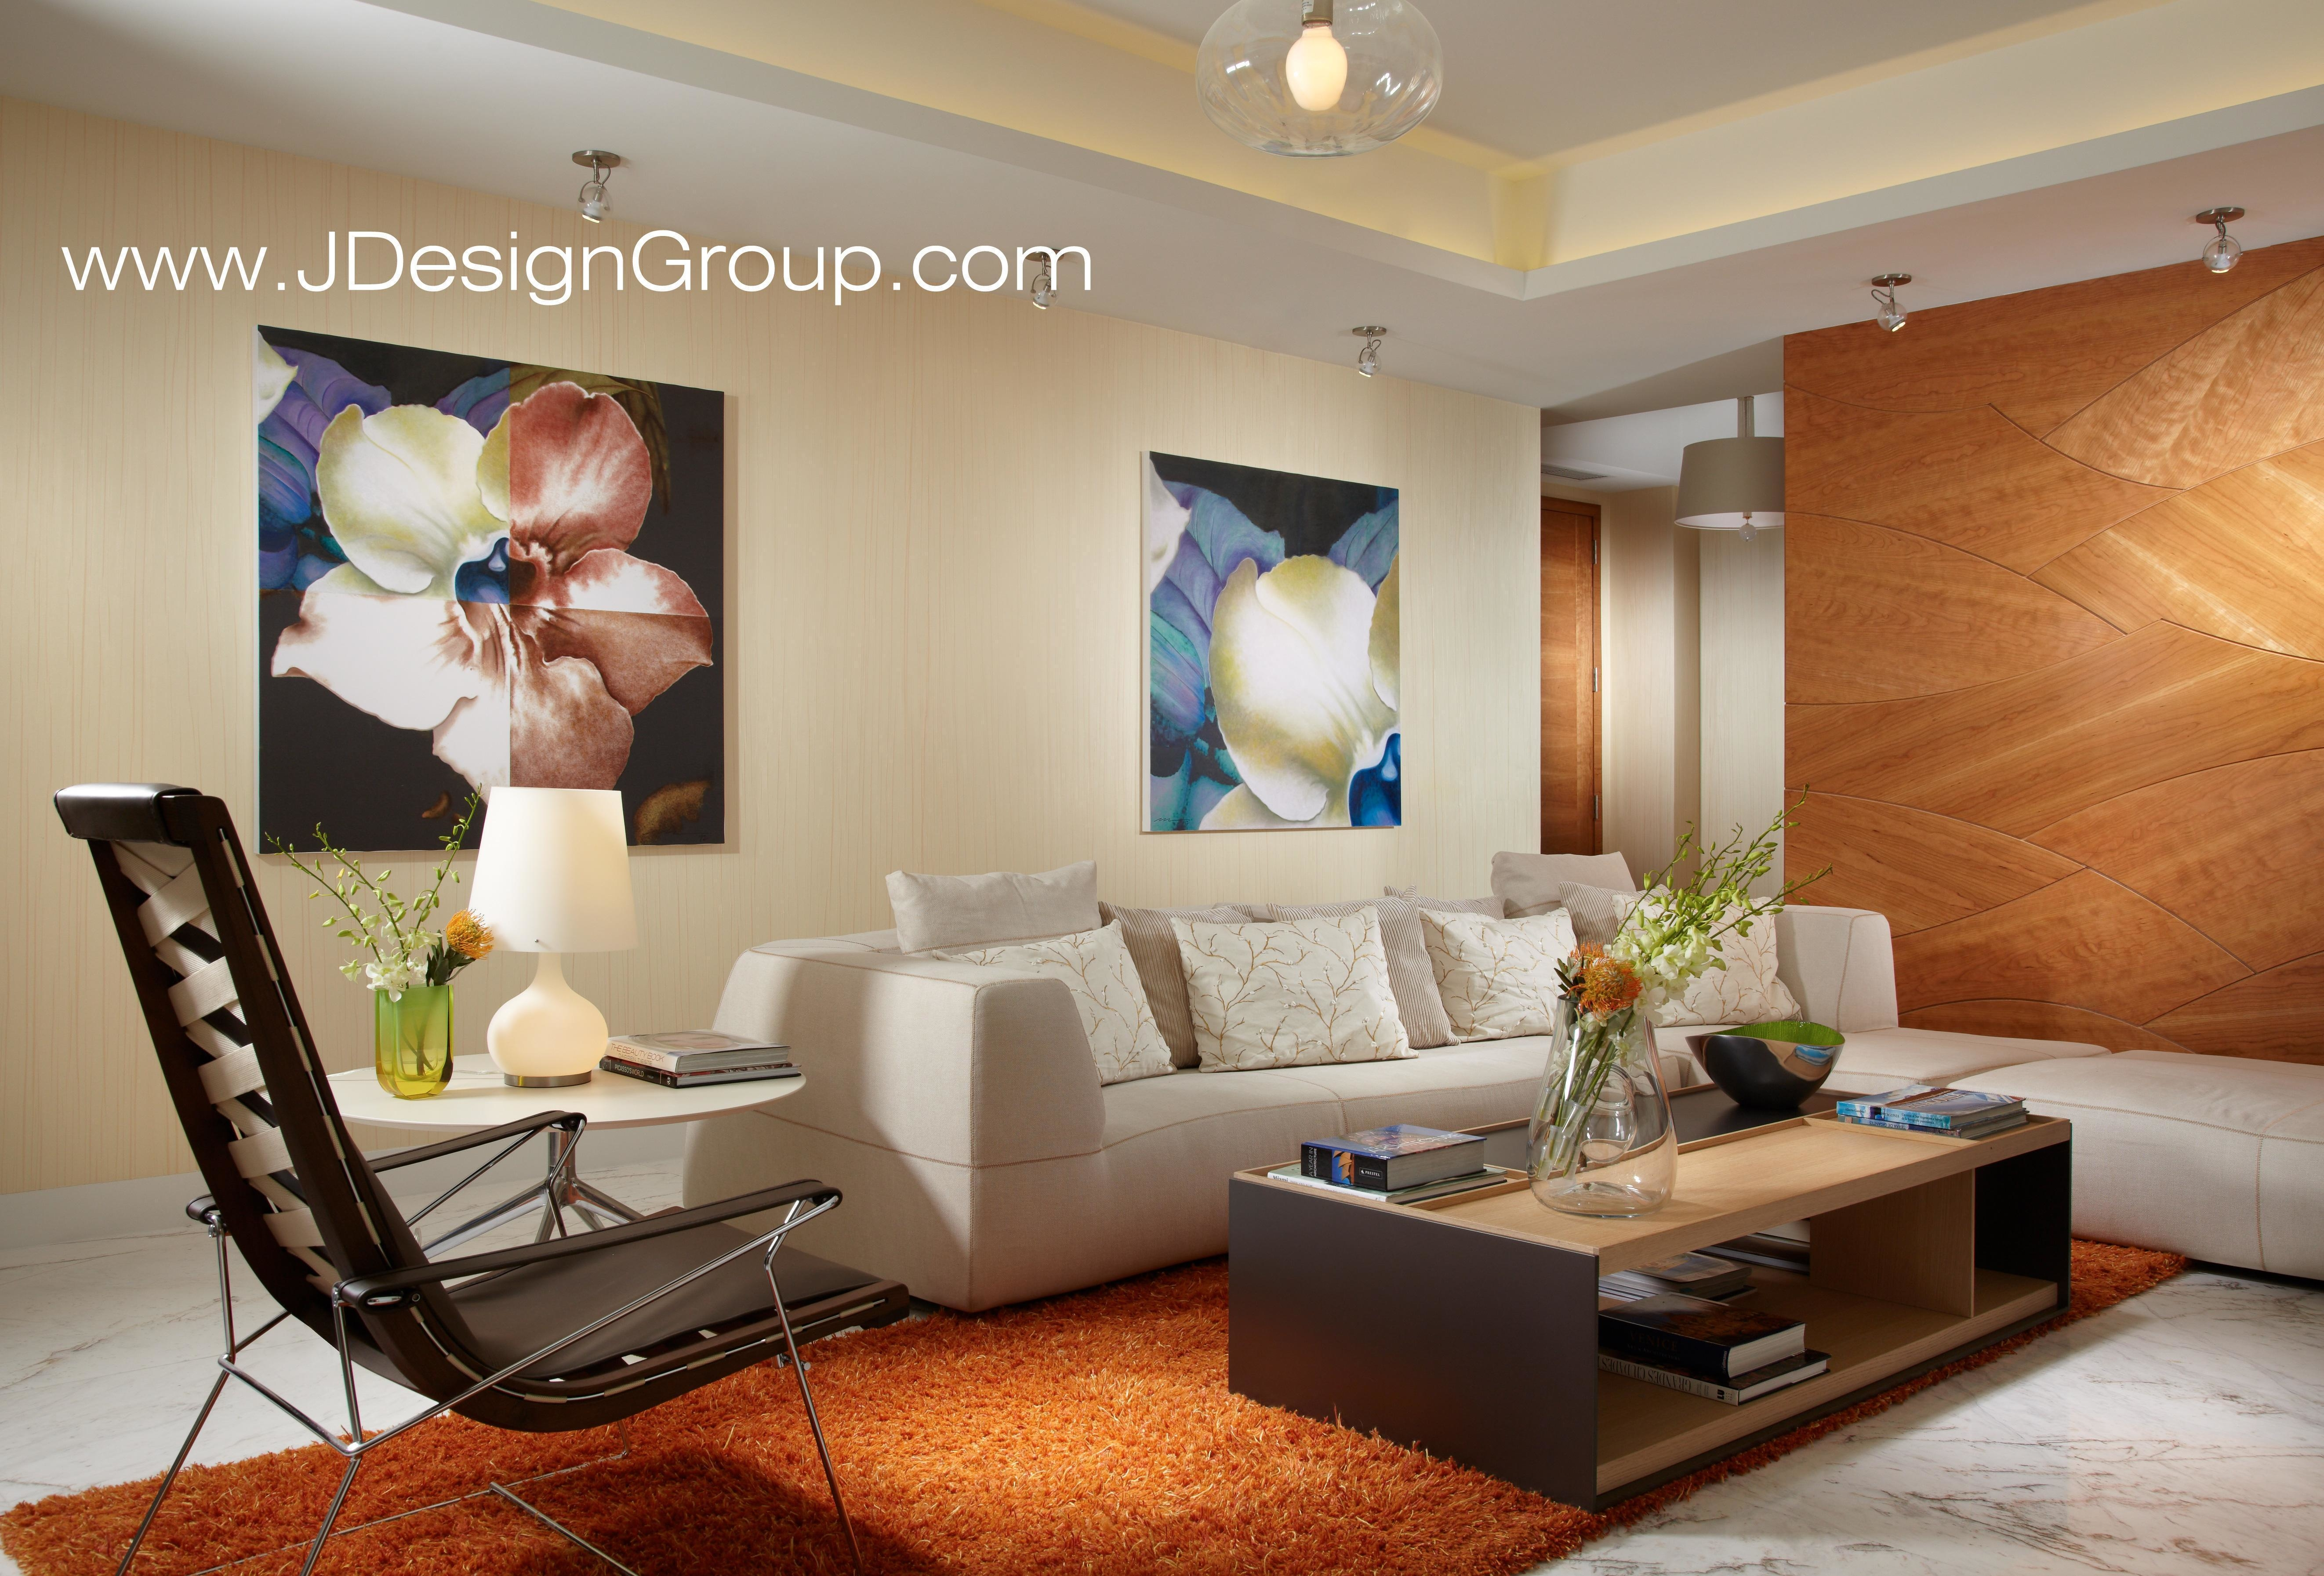 J Design Group In Coral Gables Fl Whitepages